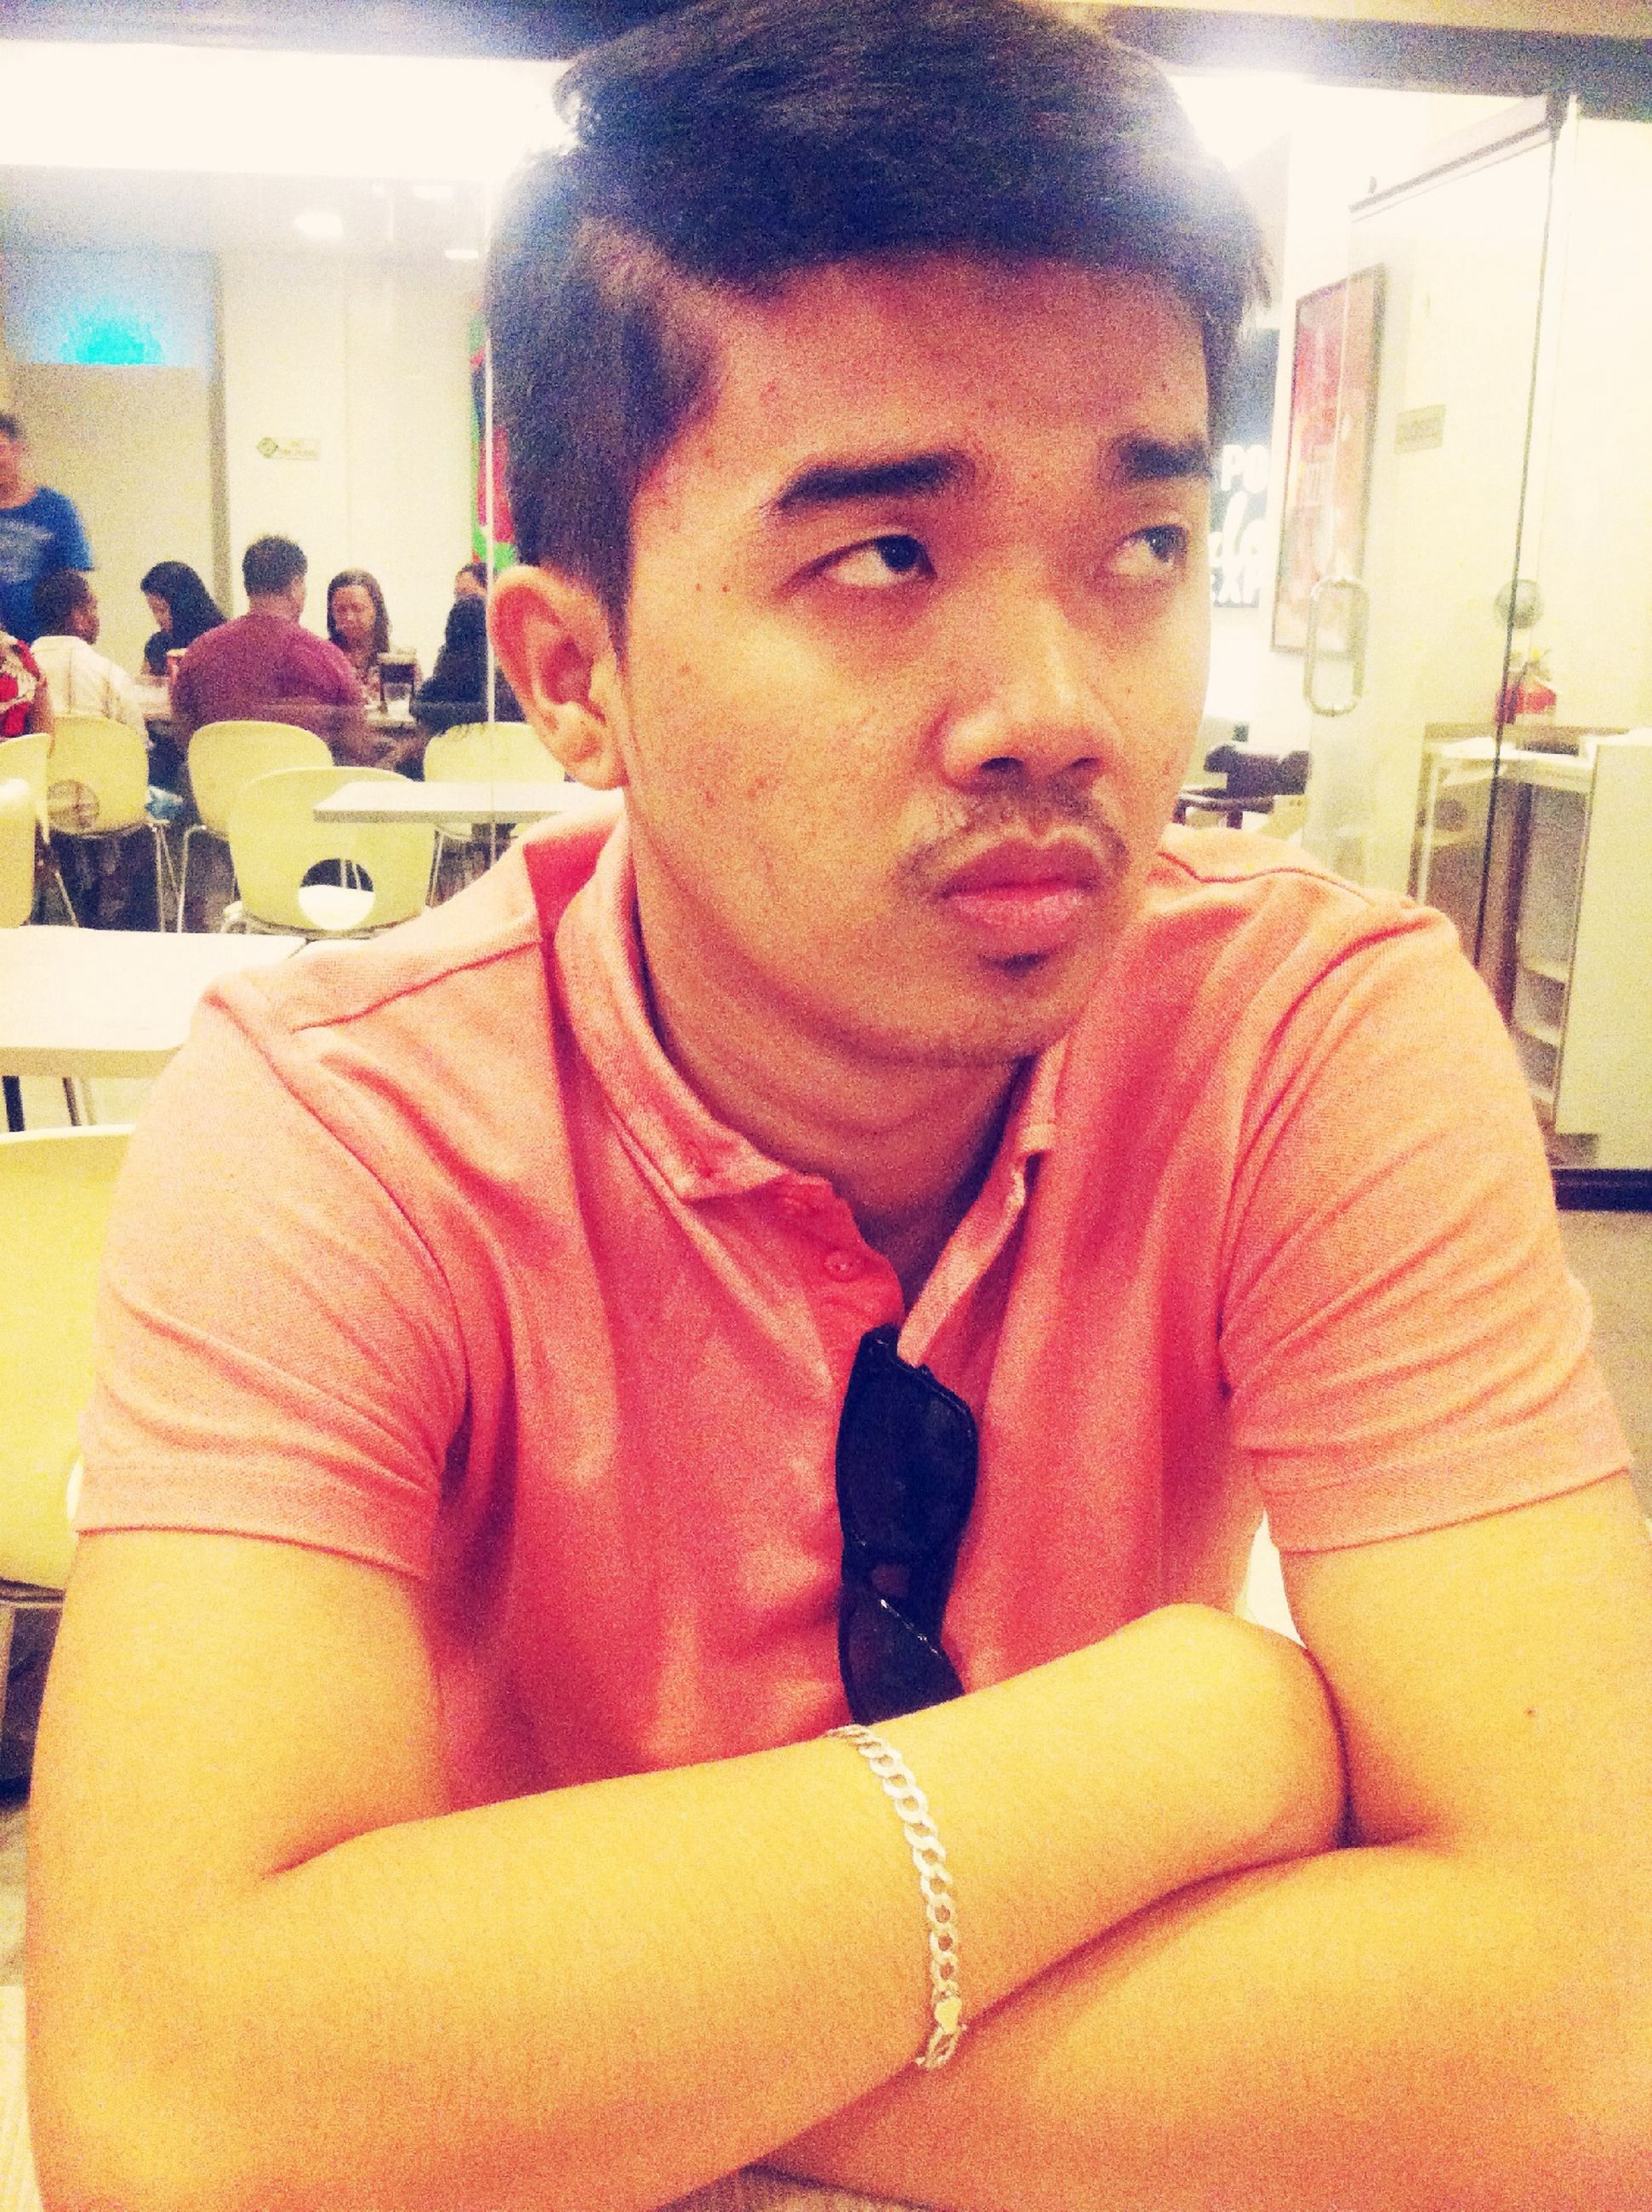 indoors, person, lifestyles, food and drink, casual clothing, front view, leisure activity, looking at camera, young adult, portrait, sitting, restaurant, waist up, food, young men, smiling, holding, headshot